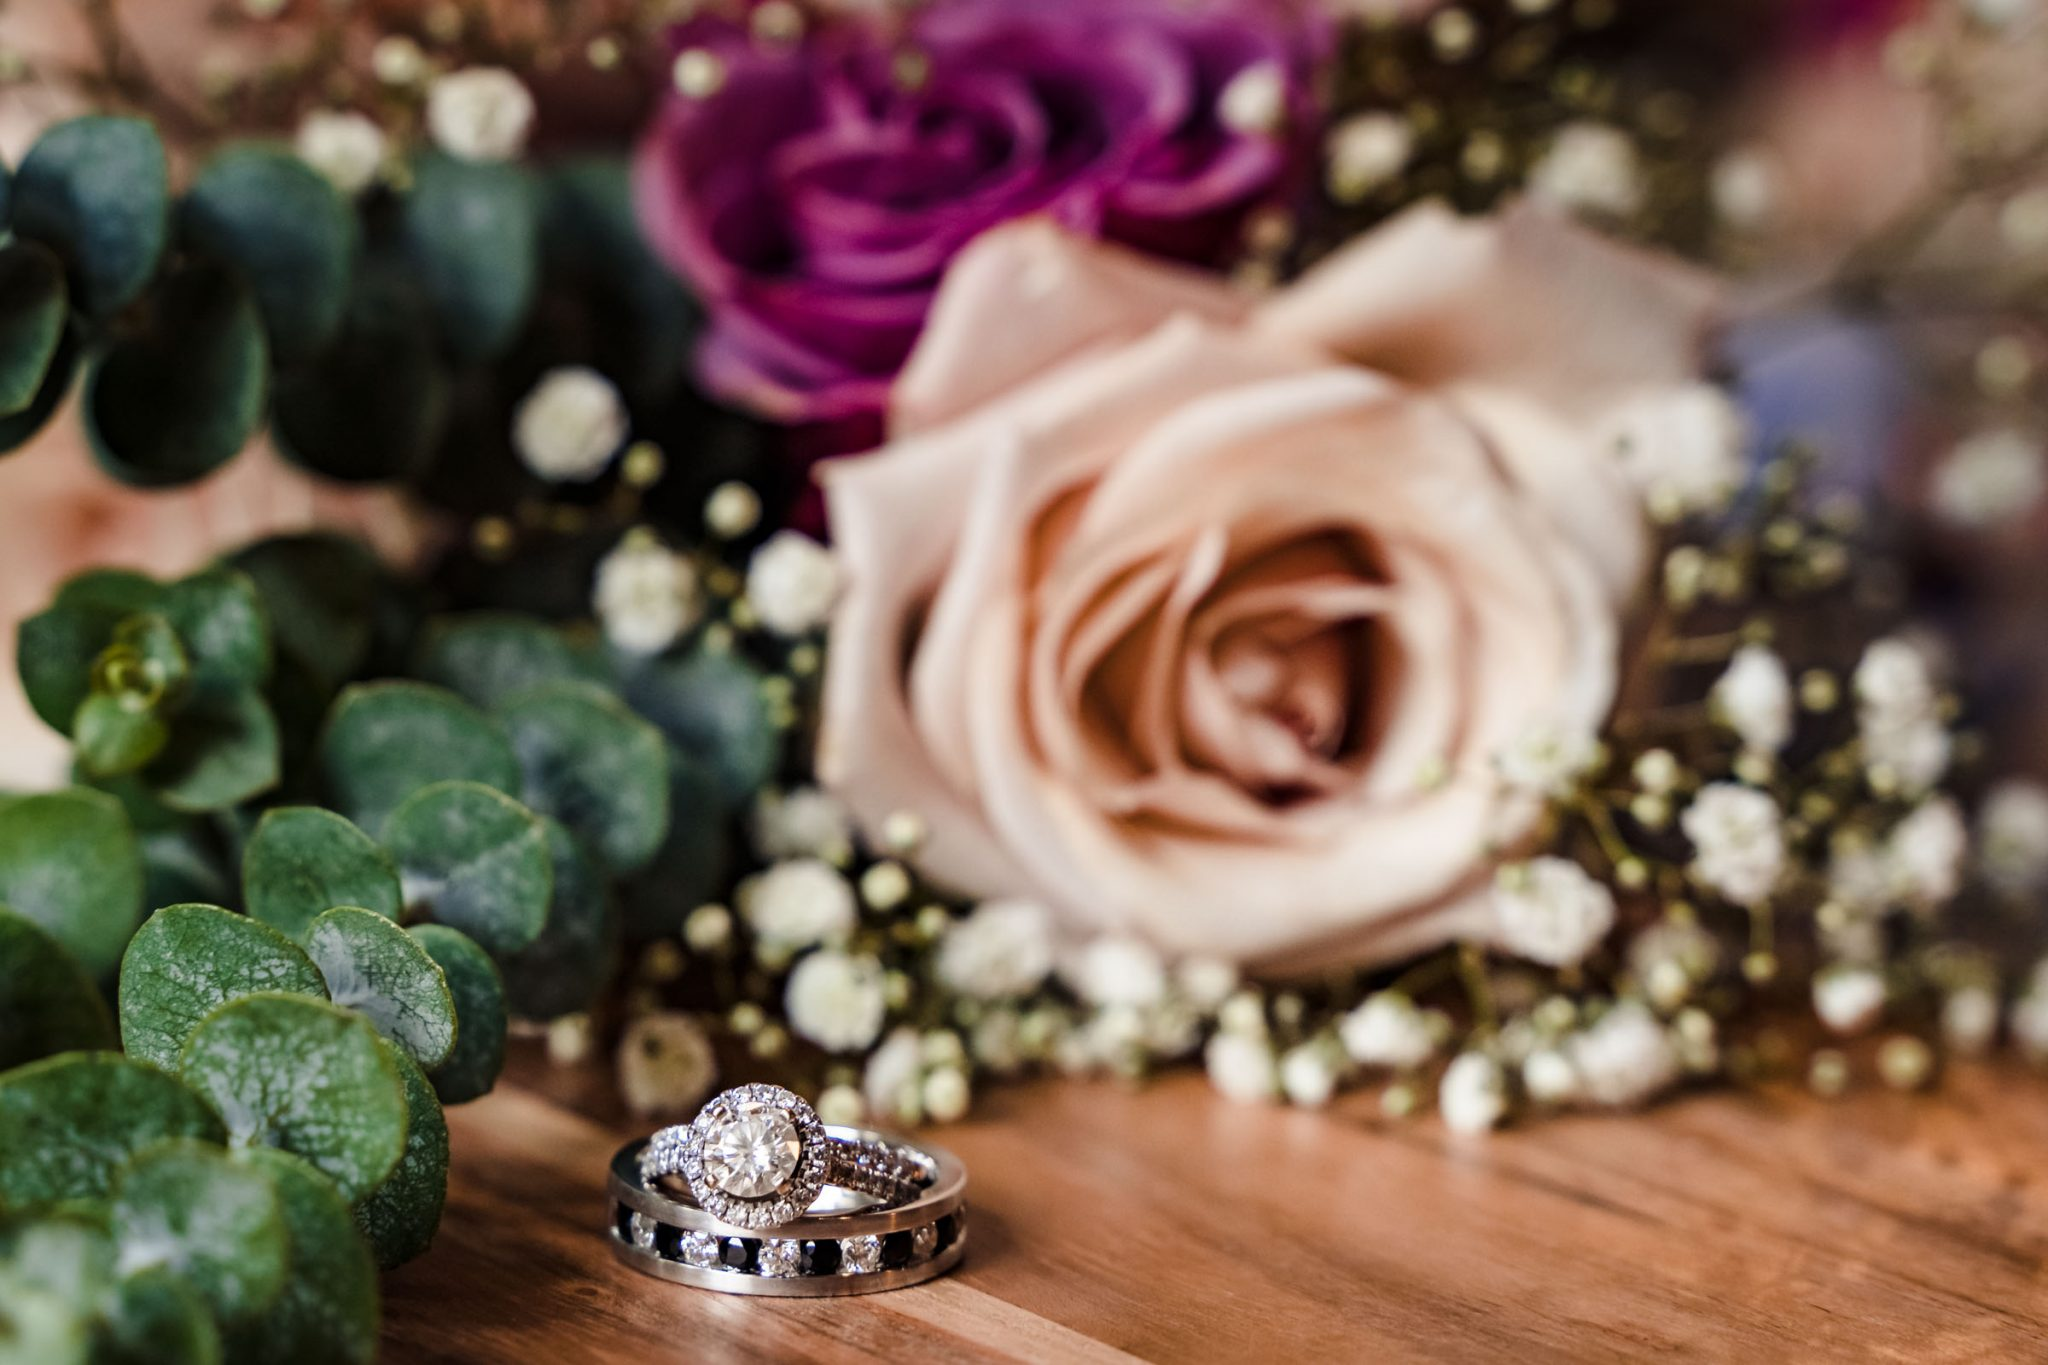 Bride and groom's rings with the bouquet